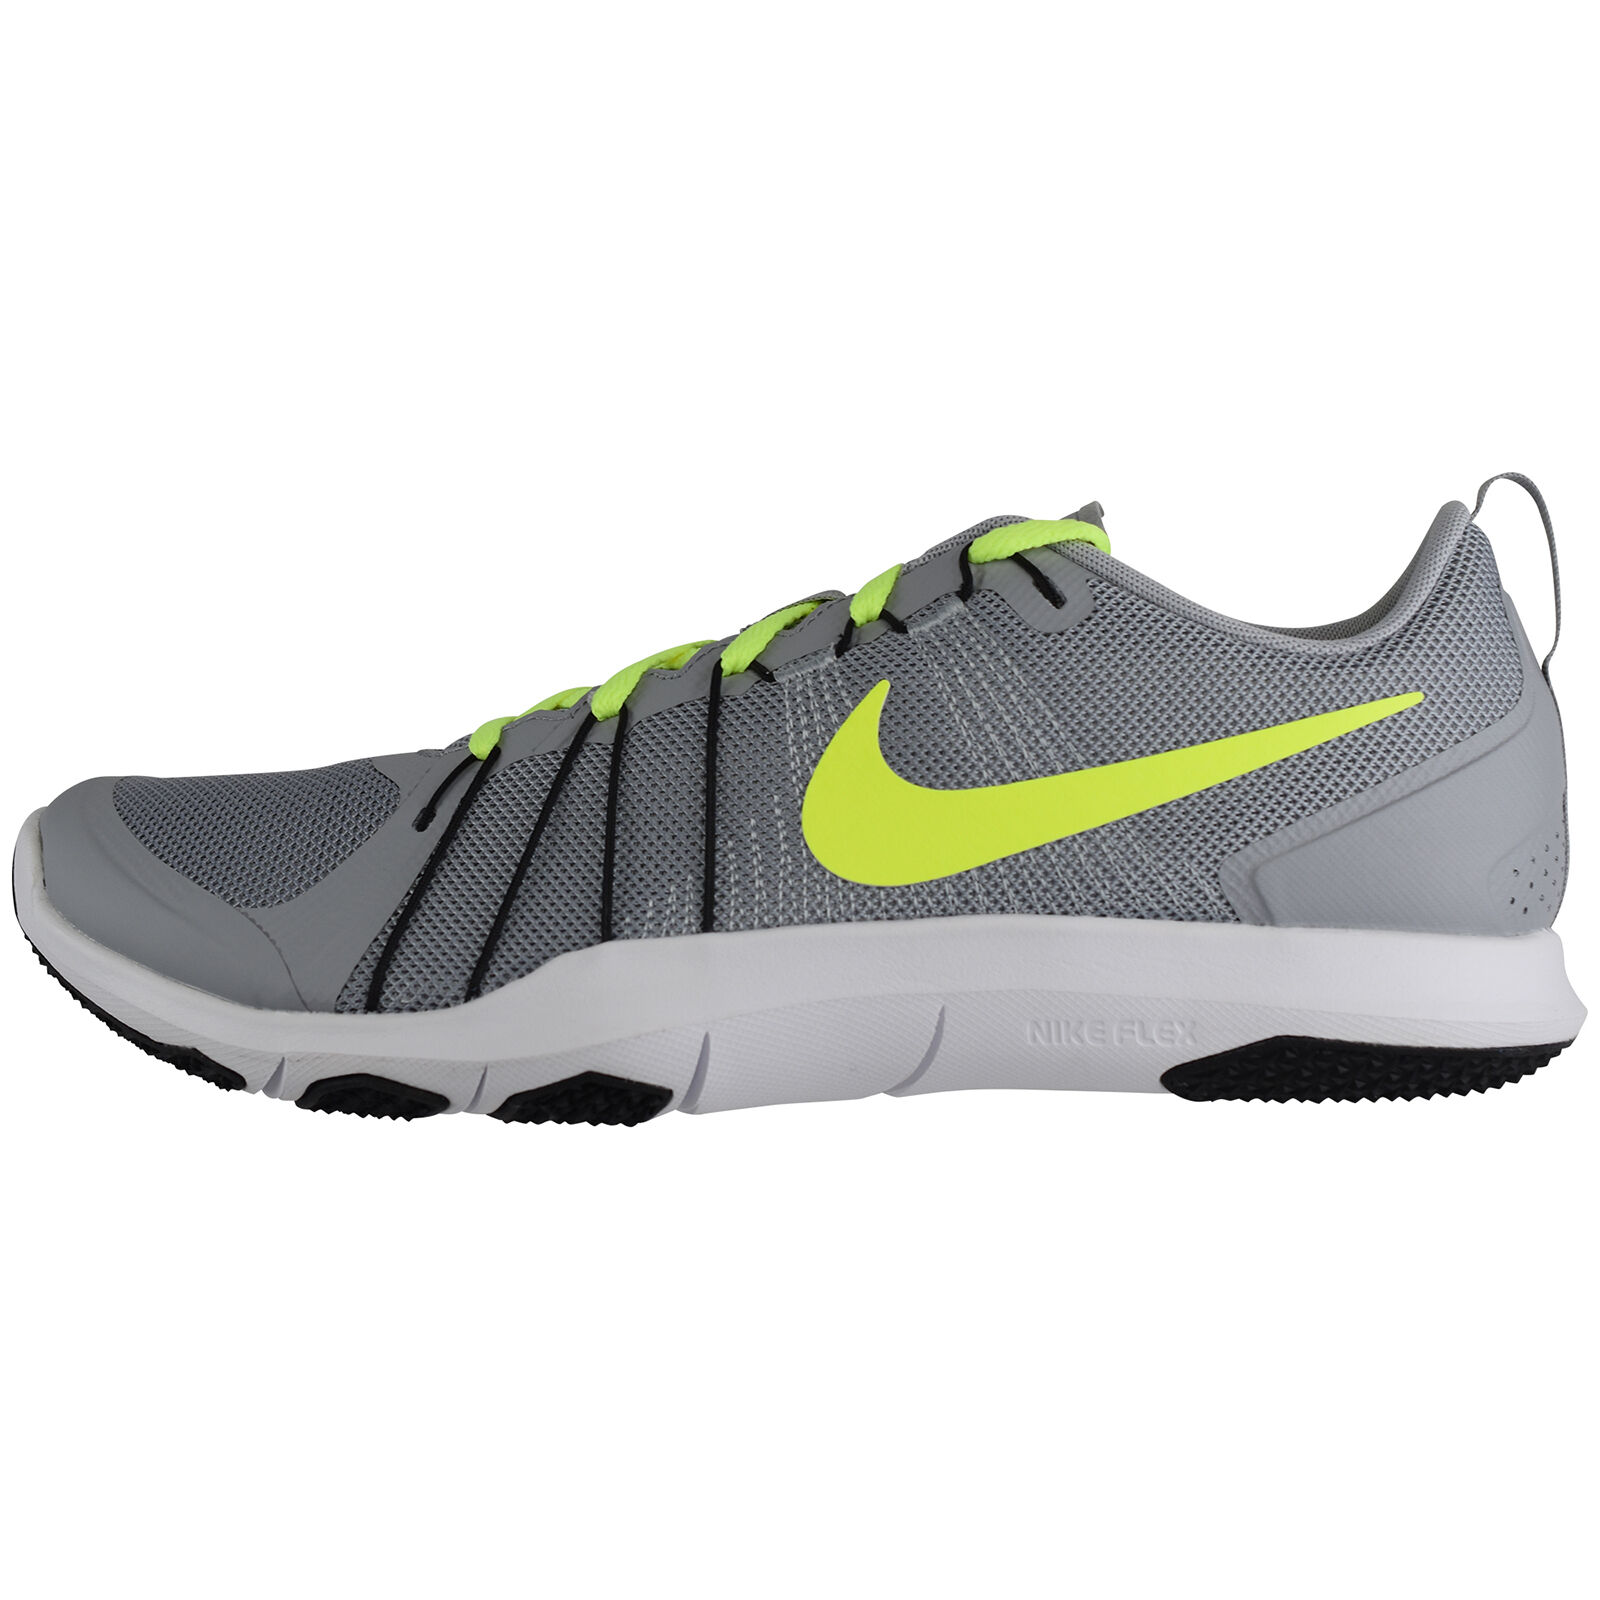 Nike Flex Train Aver 831568-004 Lifestyle Zapatillas Running Deportivas Wild casual shoes